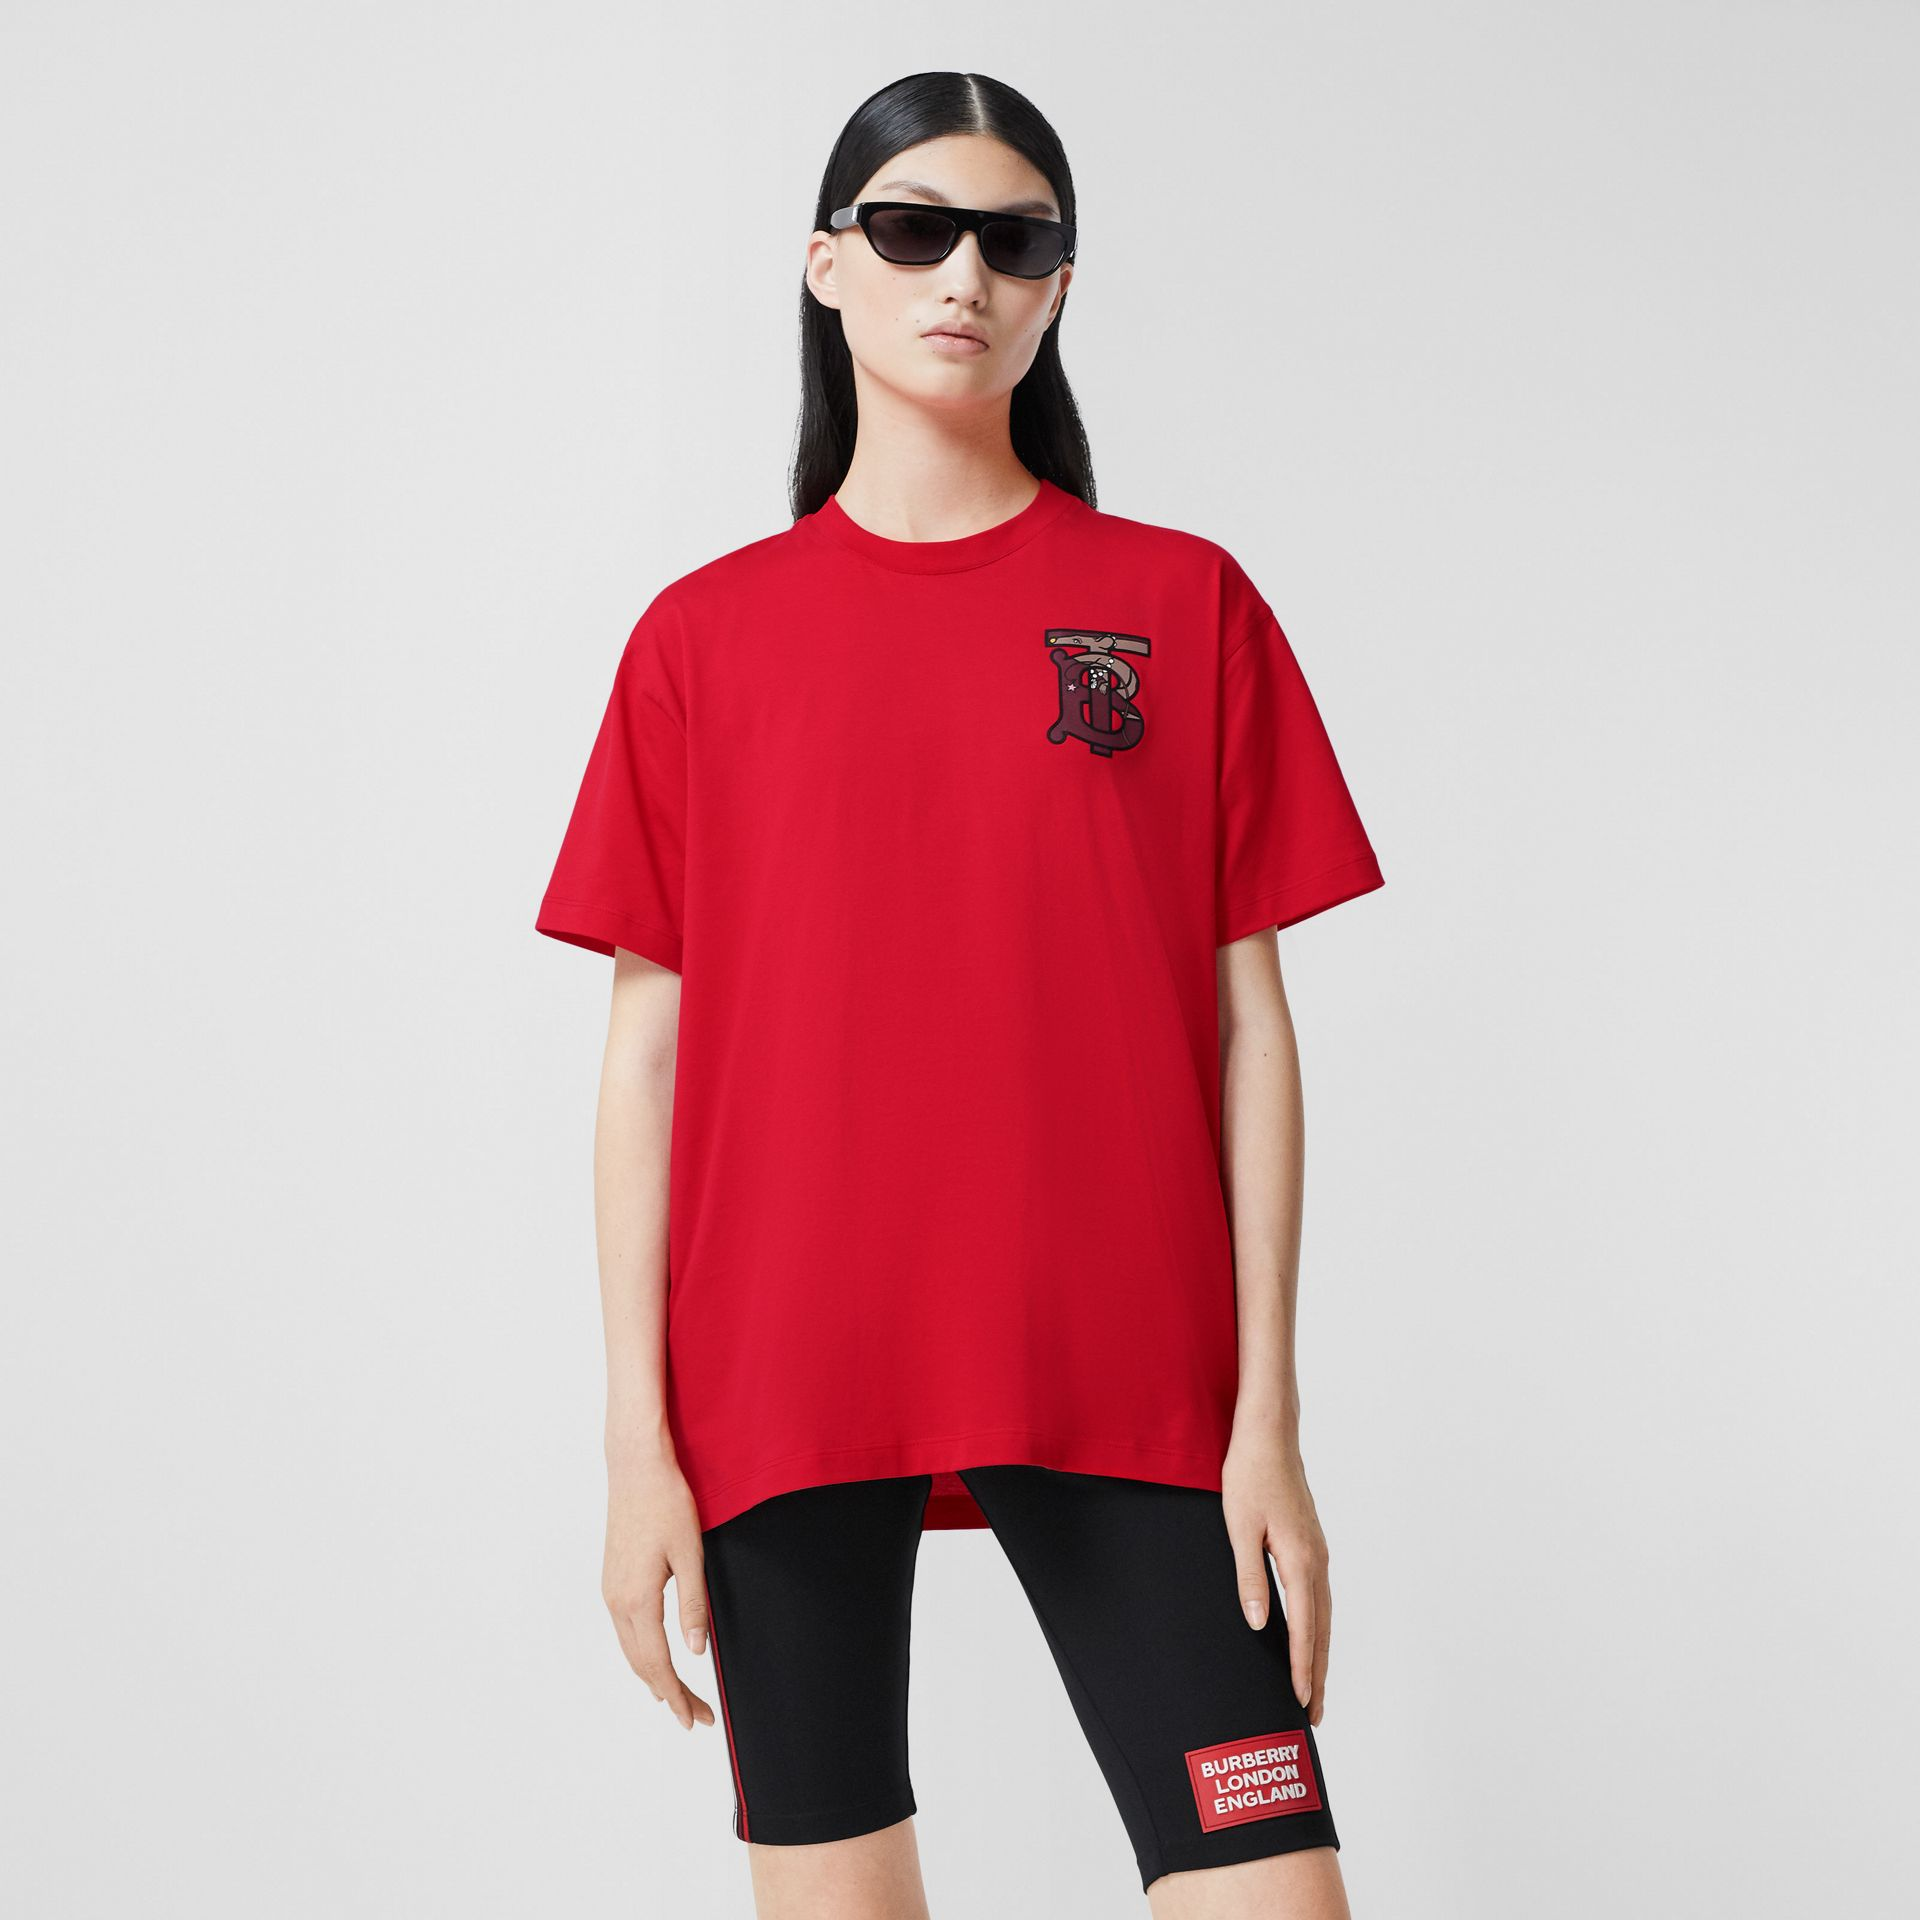 Monogram Motif Cotton Oversized T-shirt in Bright Red - Women | Burberry - gallery image 4